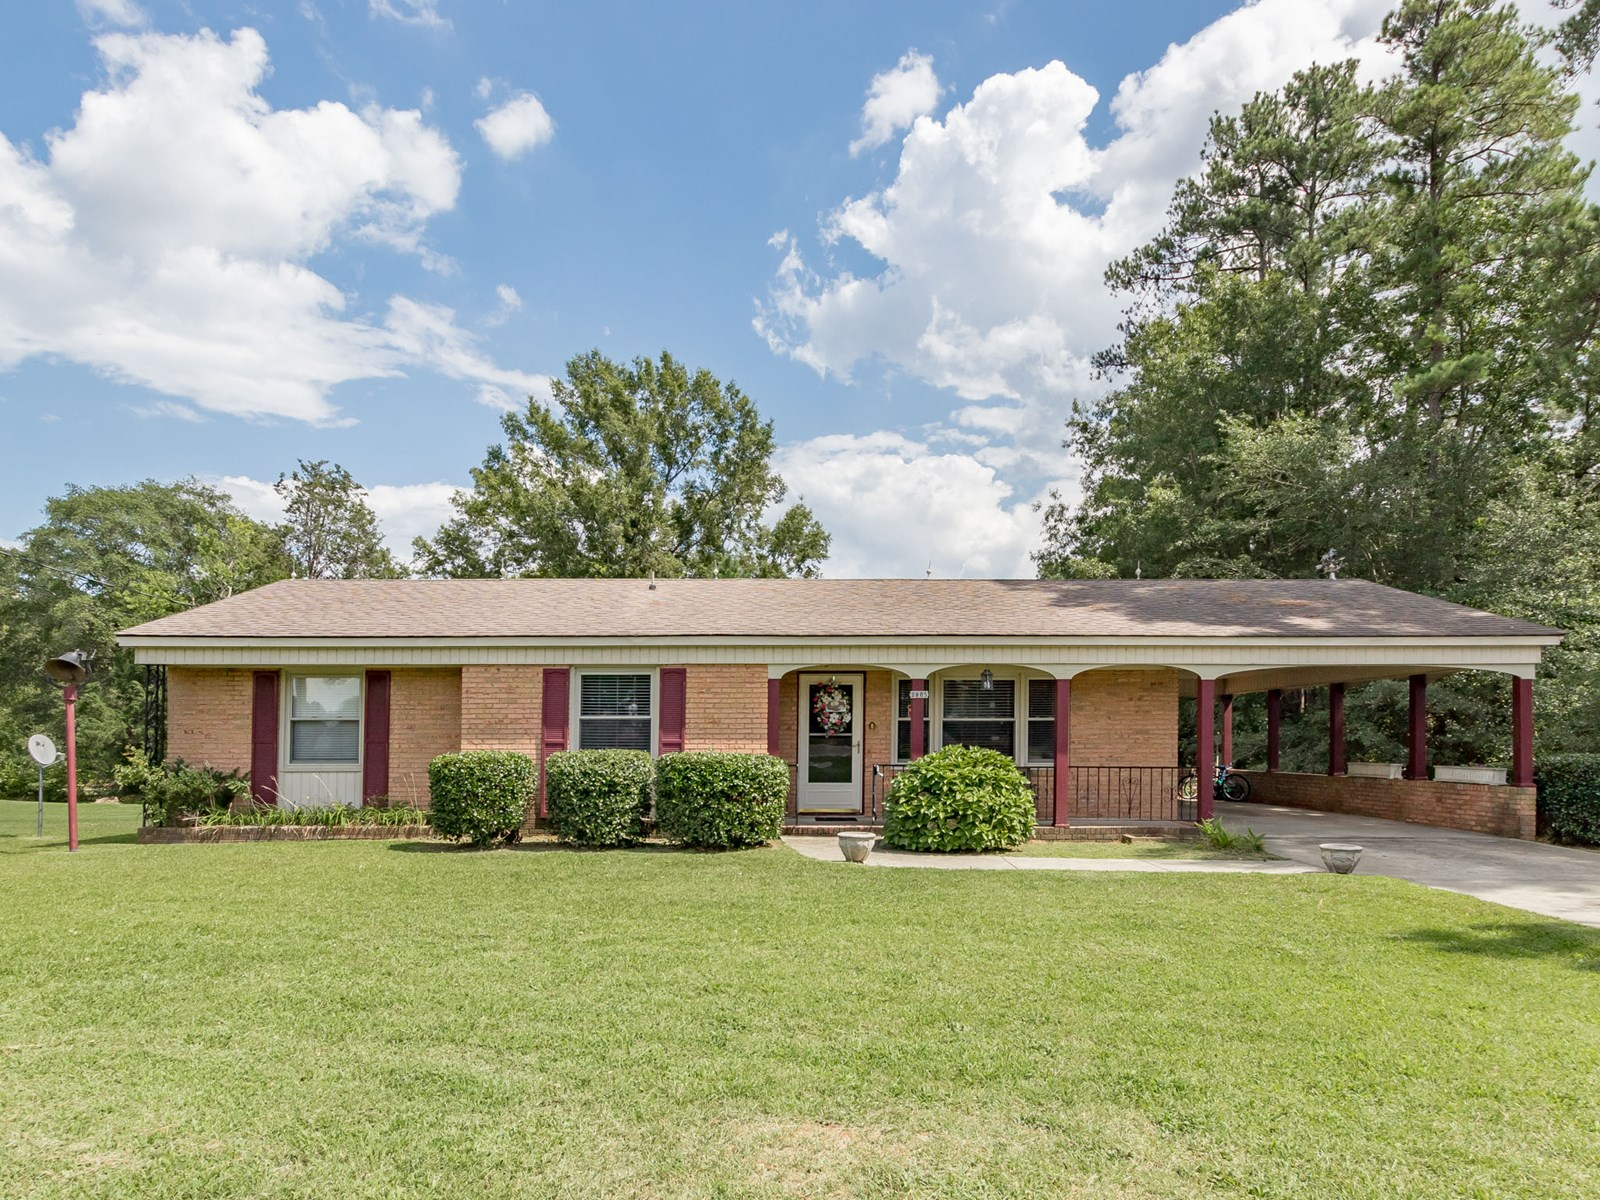 3-Bedroom, 1.5-Bath Brick Ranch in Lee County, NC